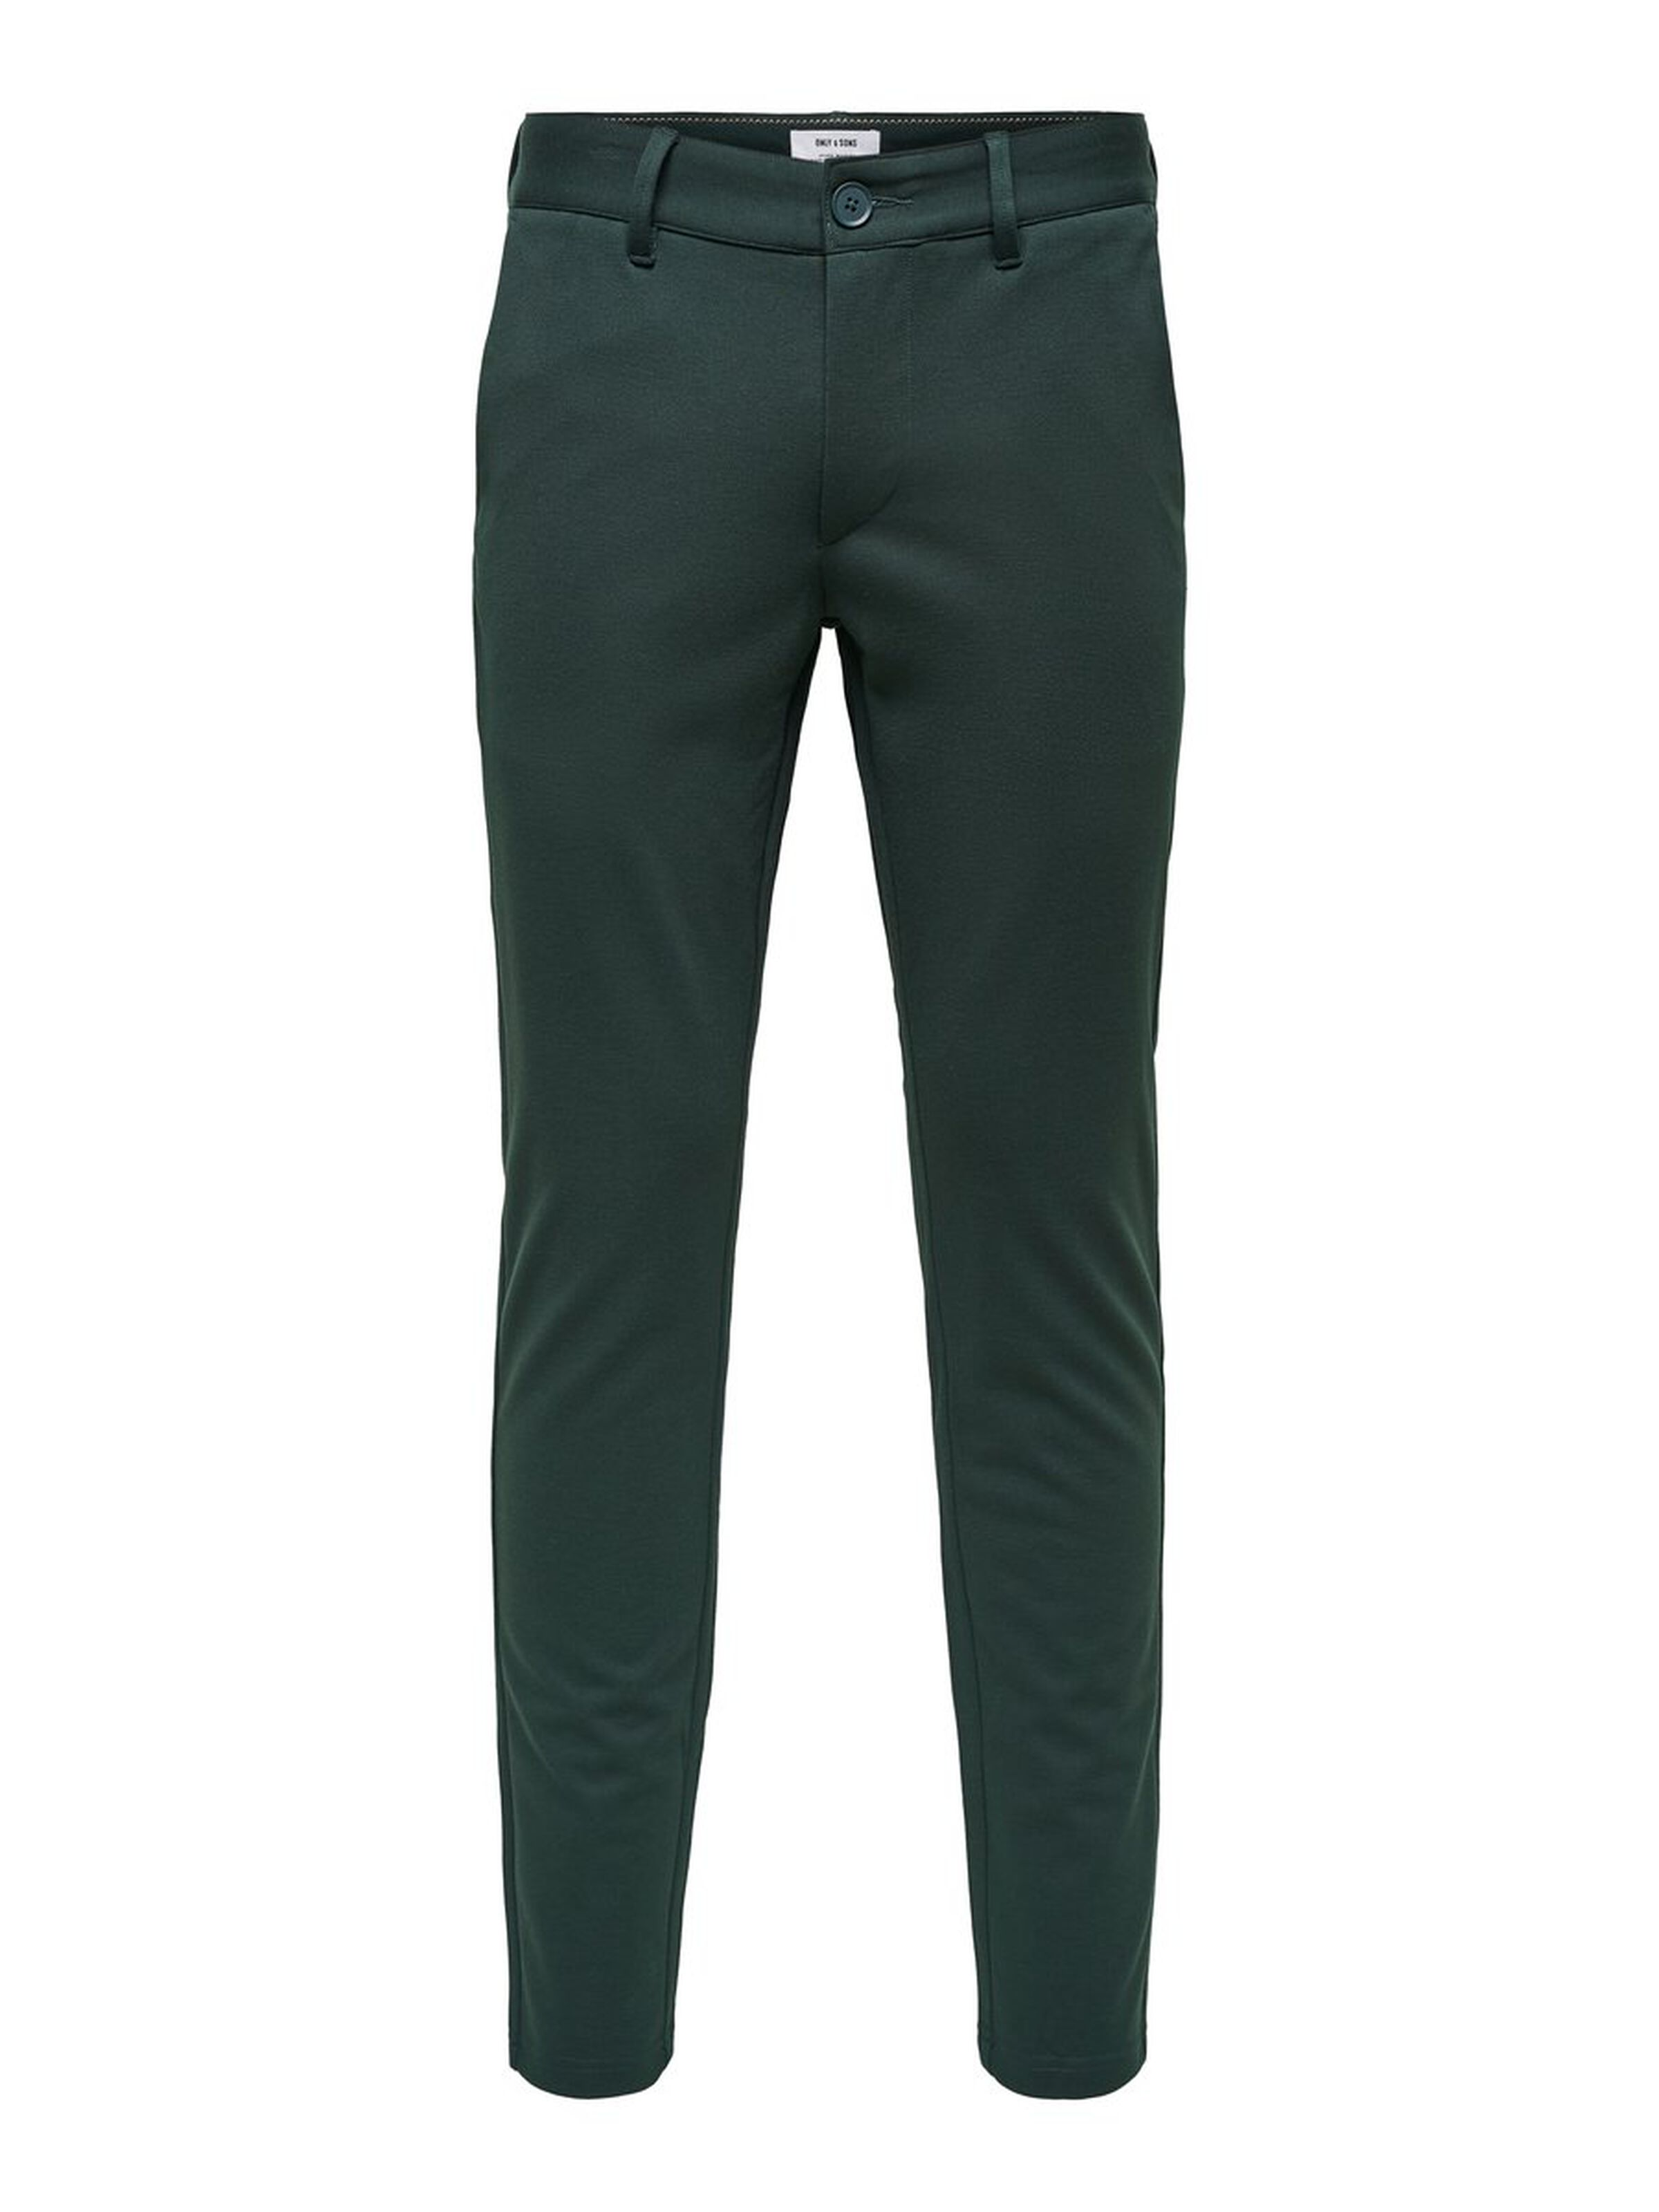 Performance Pants, Only & Sons, Mark chinos, rosin, 33/30